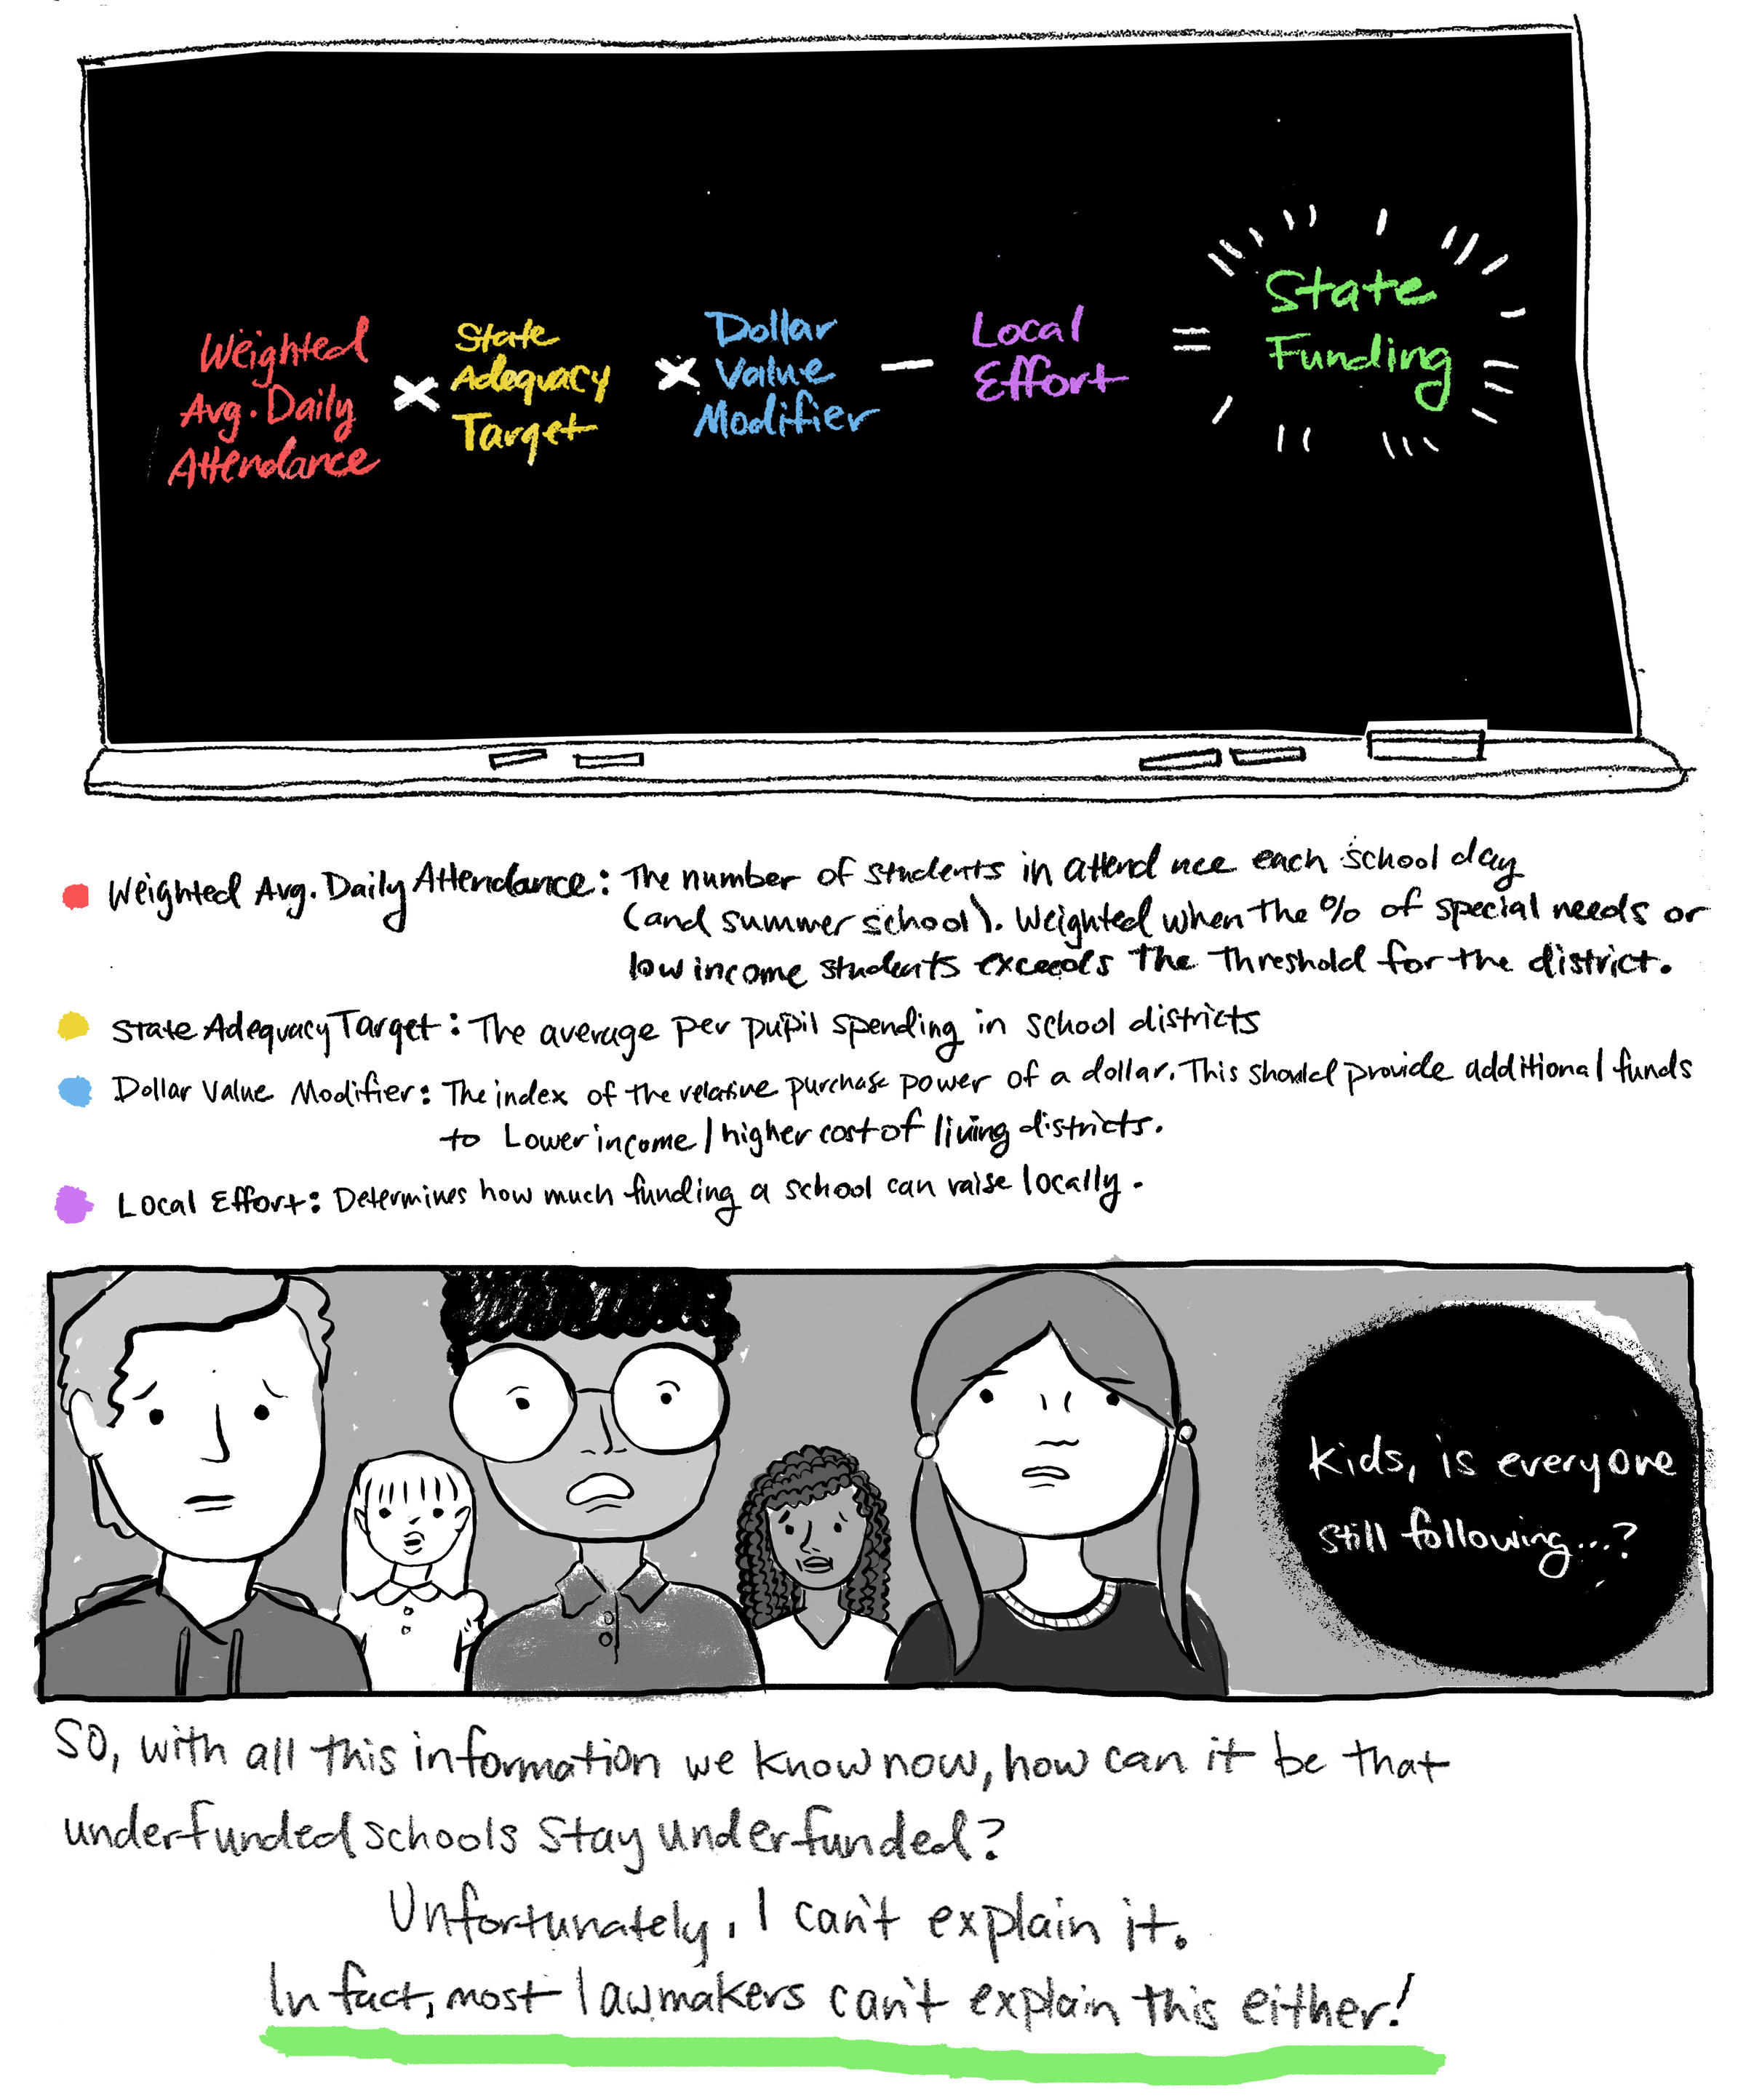 FIXeducation-comic-part2.jpg